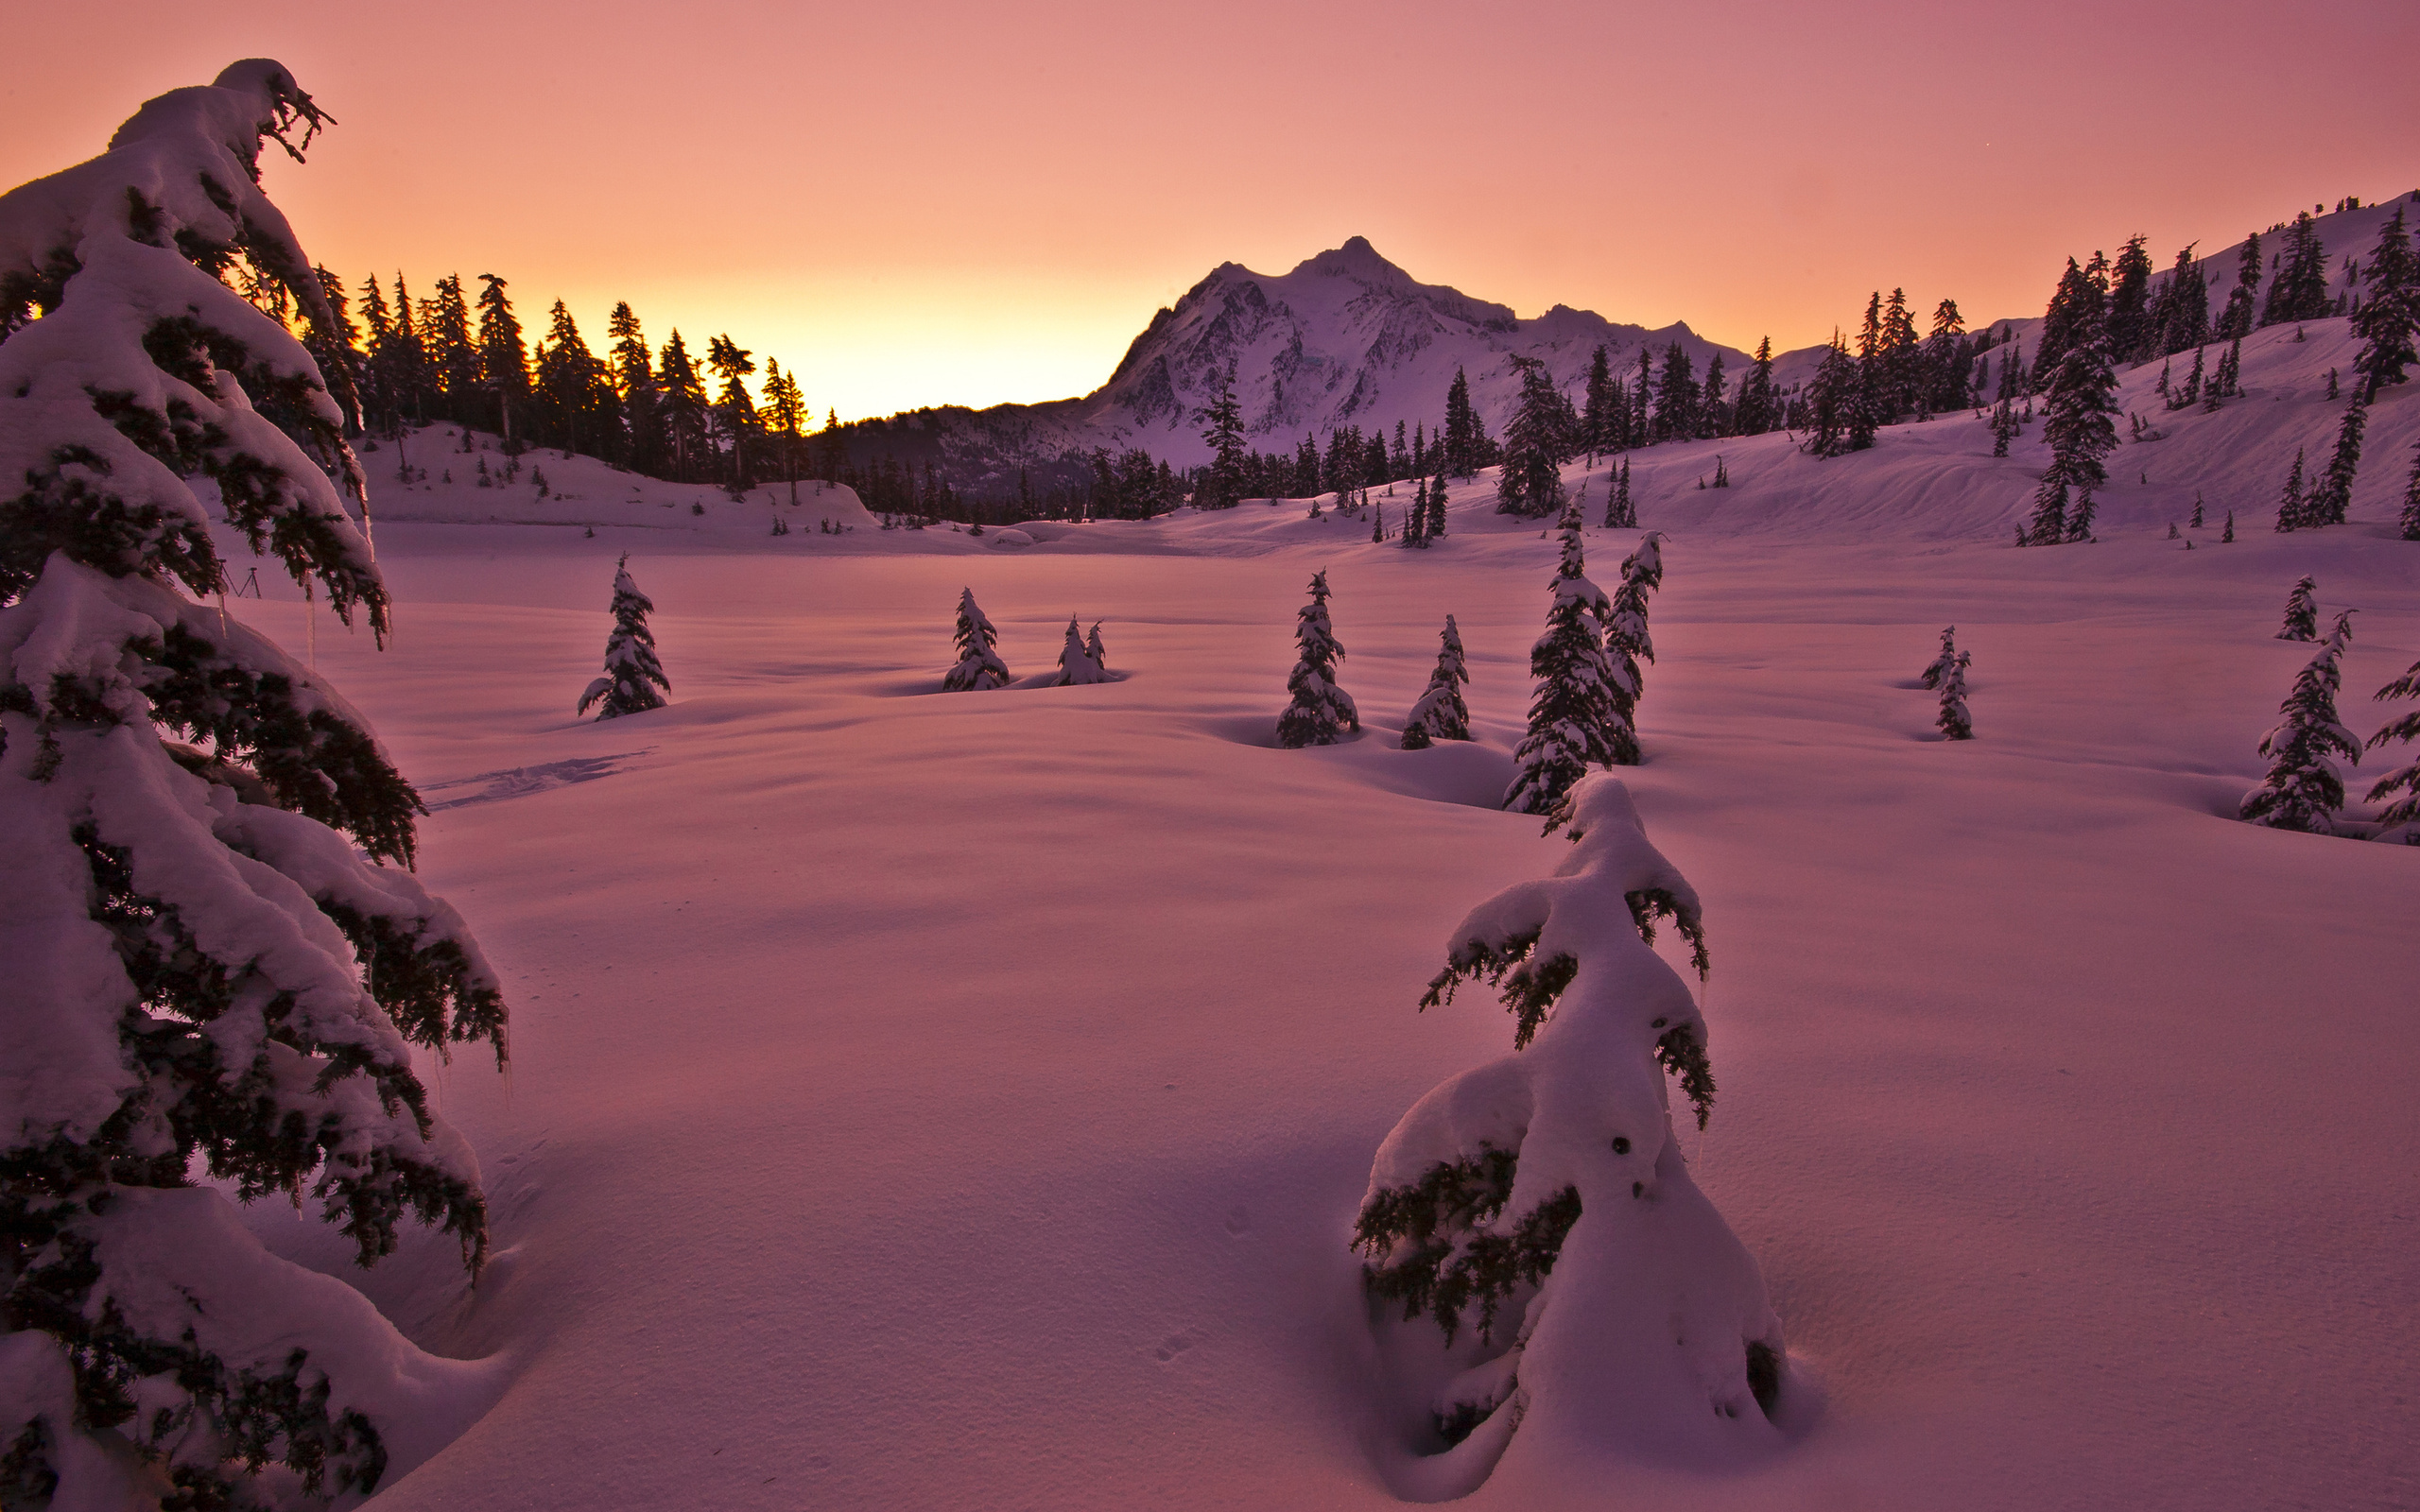 Sunset Winter Snow Mountains Trees Landscape Wallpaper